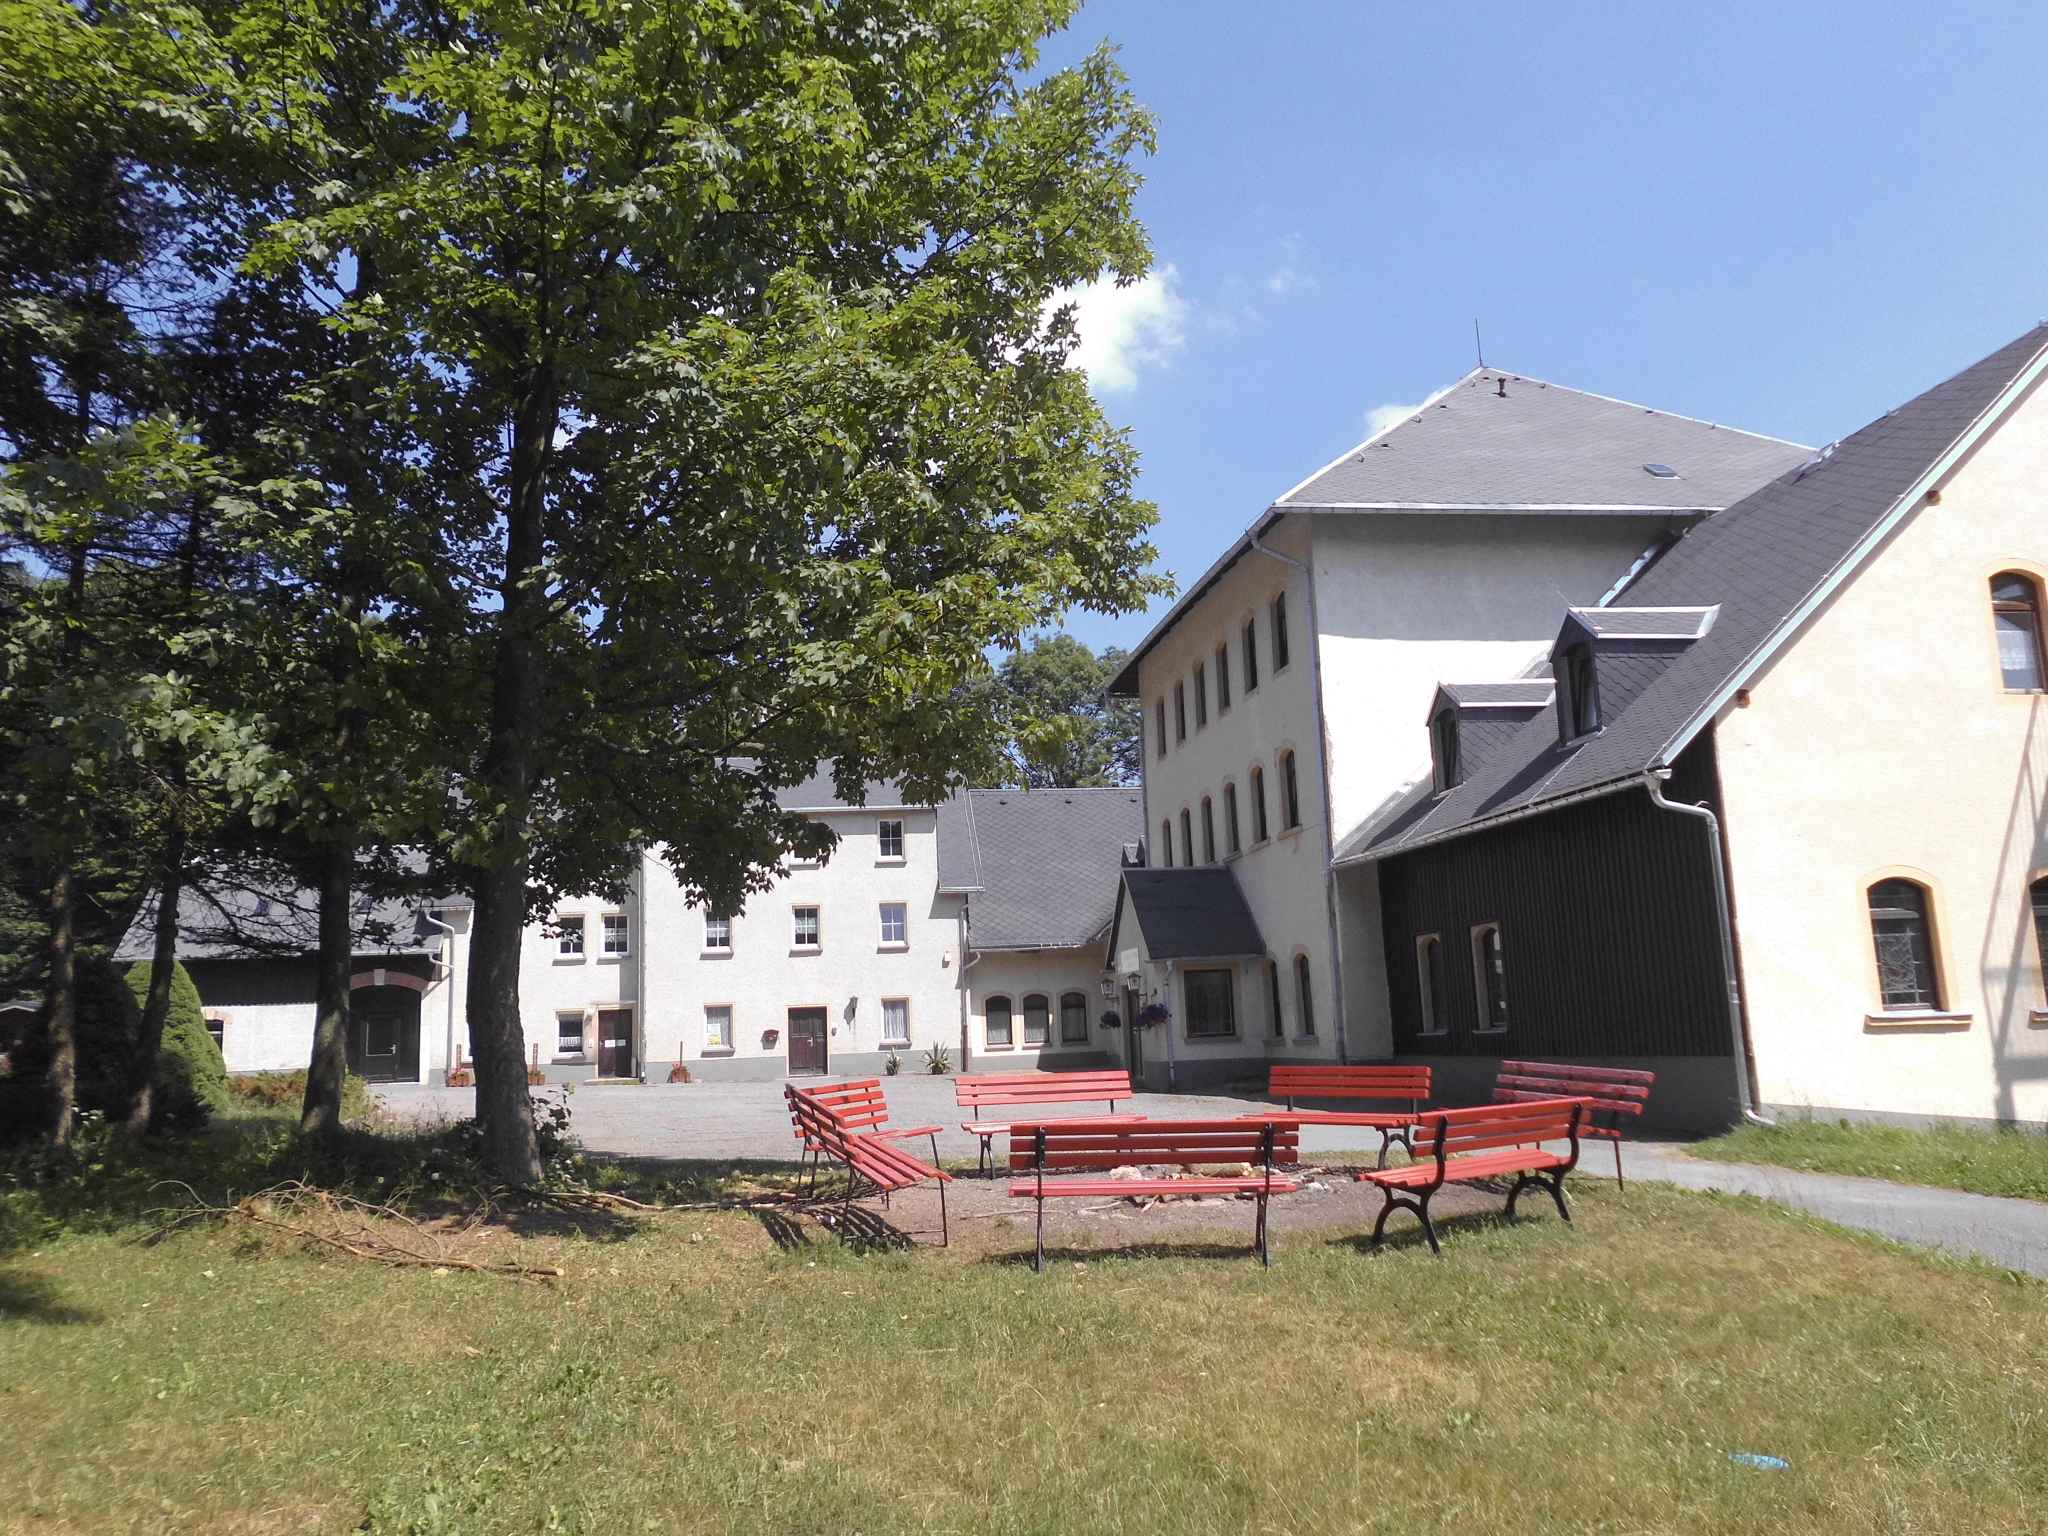 Holiday apartment in ruhiger Waldrandlage (322516), Sayda, The Ore Mountains, Saxony, Germany, picture 6